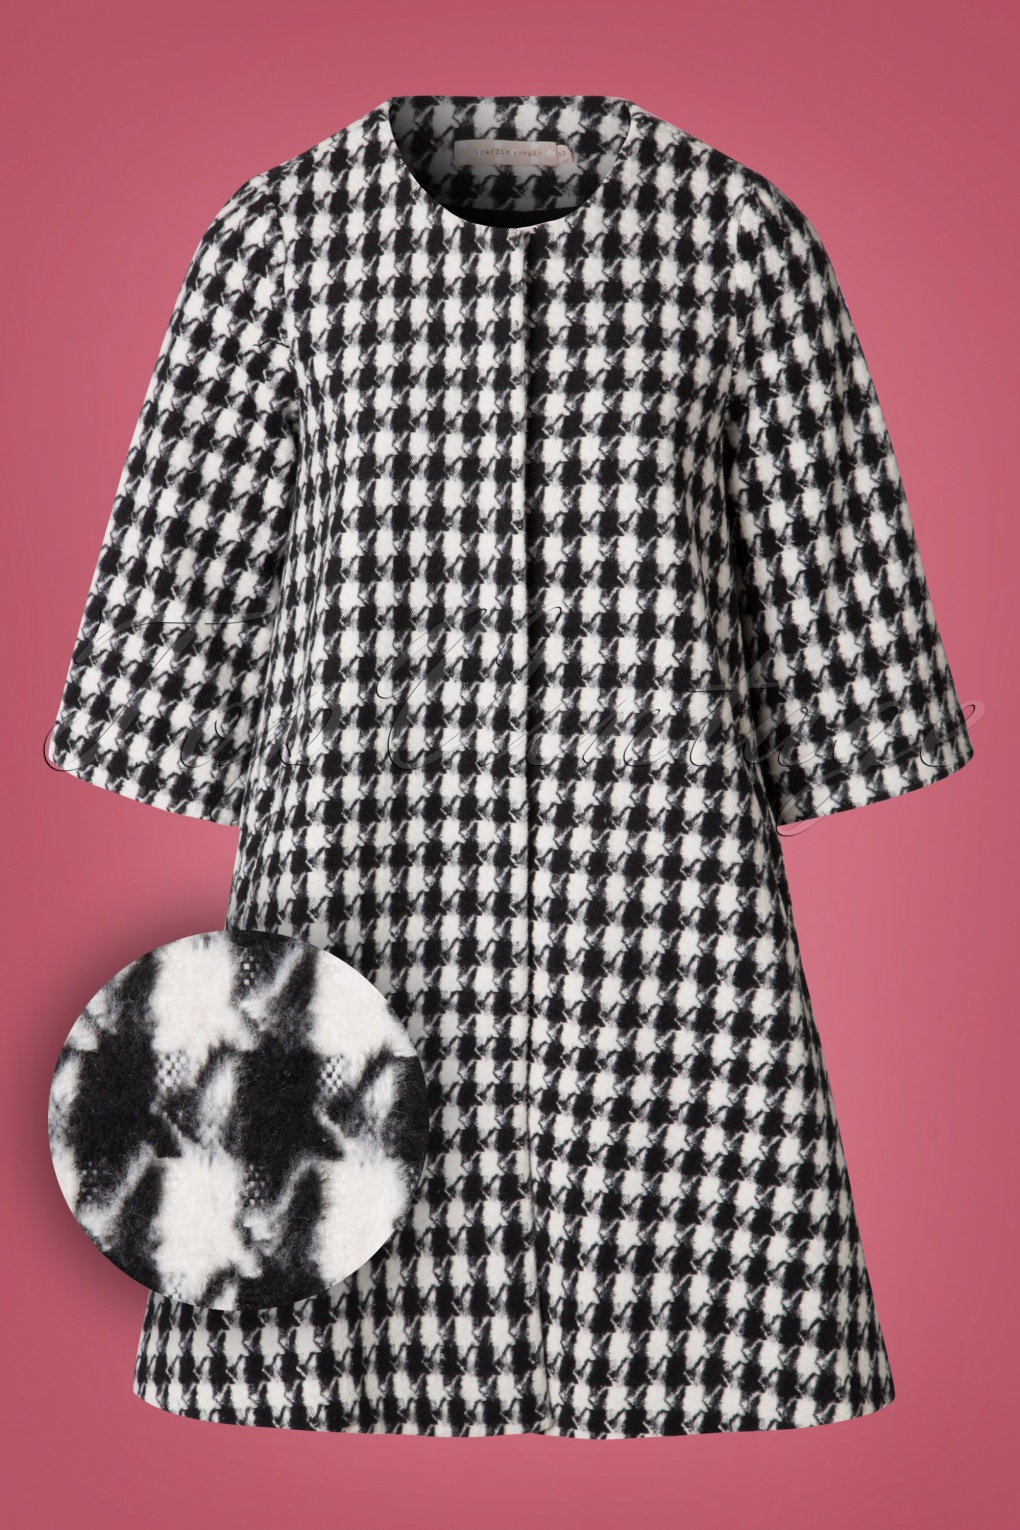 1960s Fashion: What Did Women Wear? 60s Check Mate Swing Coat in Black and White £150.41 AT vintagedancer.com